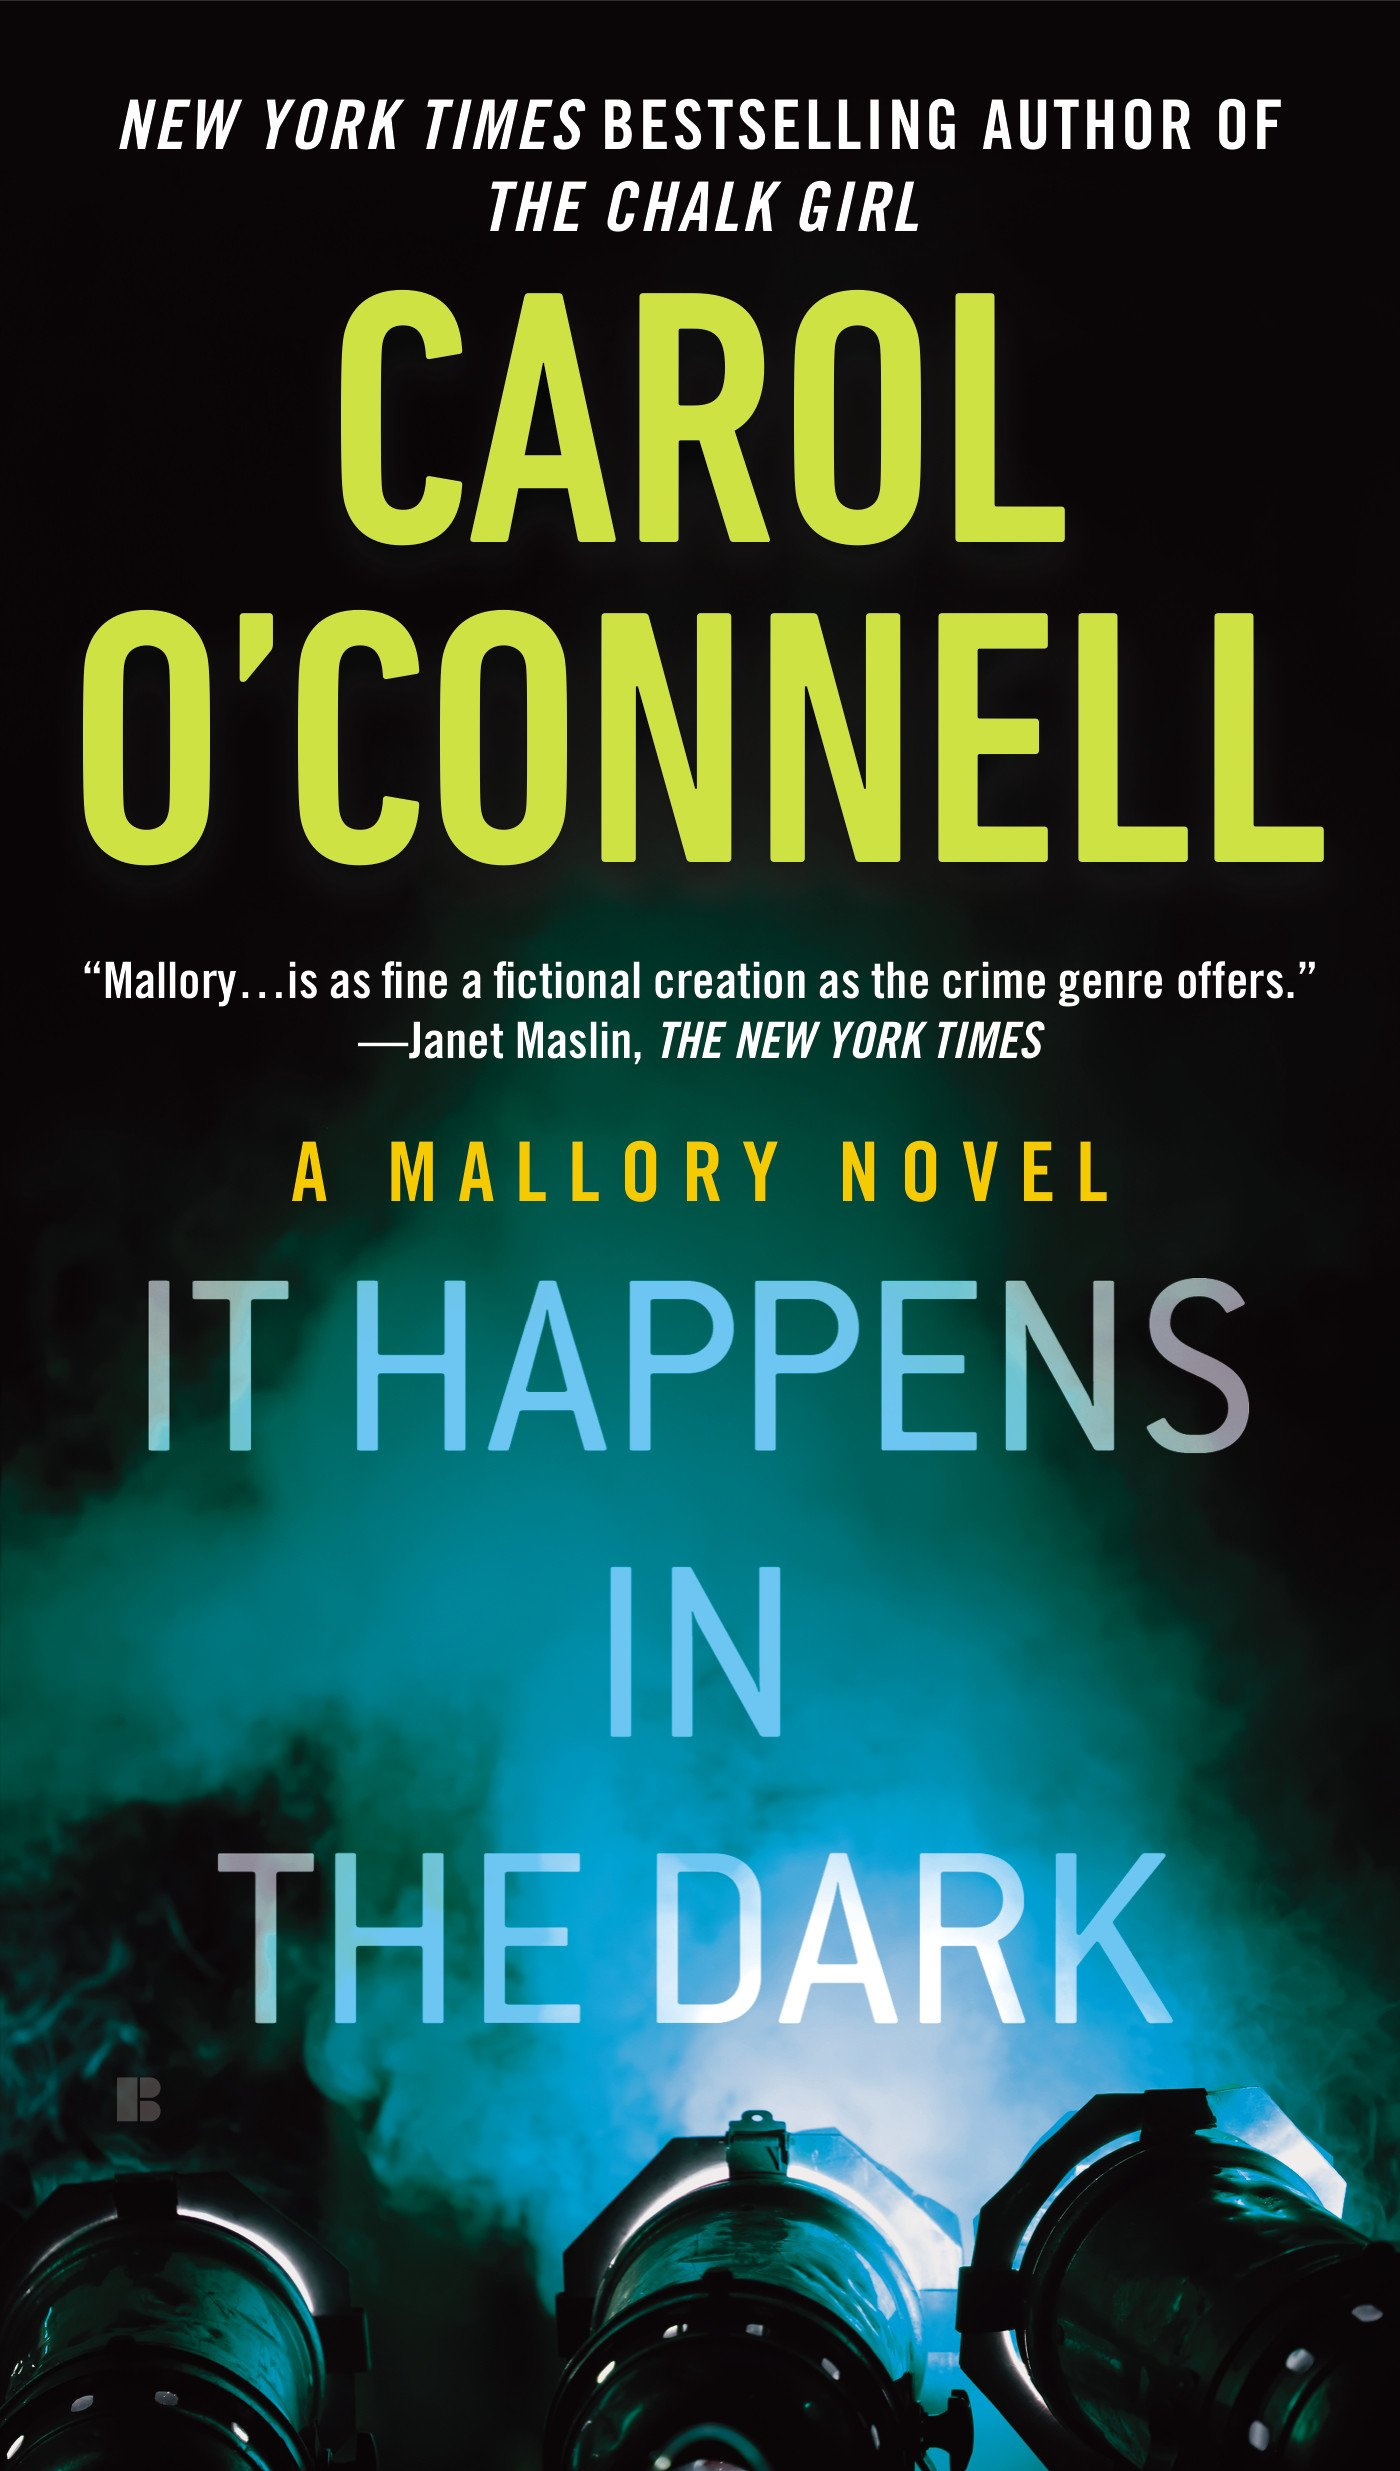 It Happens in the Dark (A Mallory Novel): Carol O'Connell ...